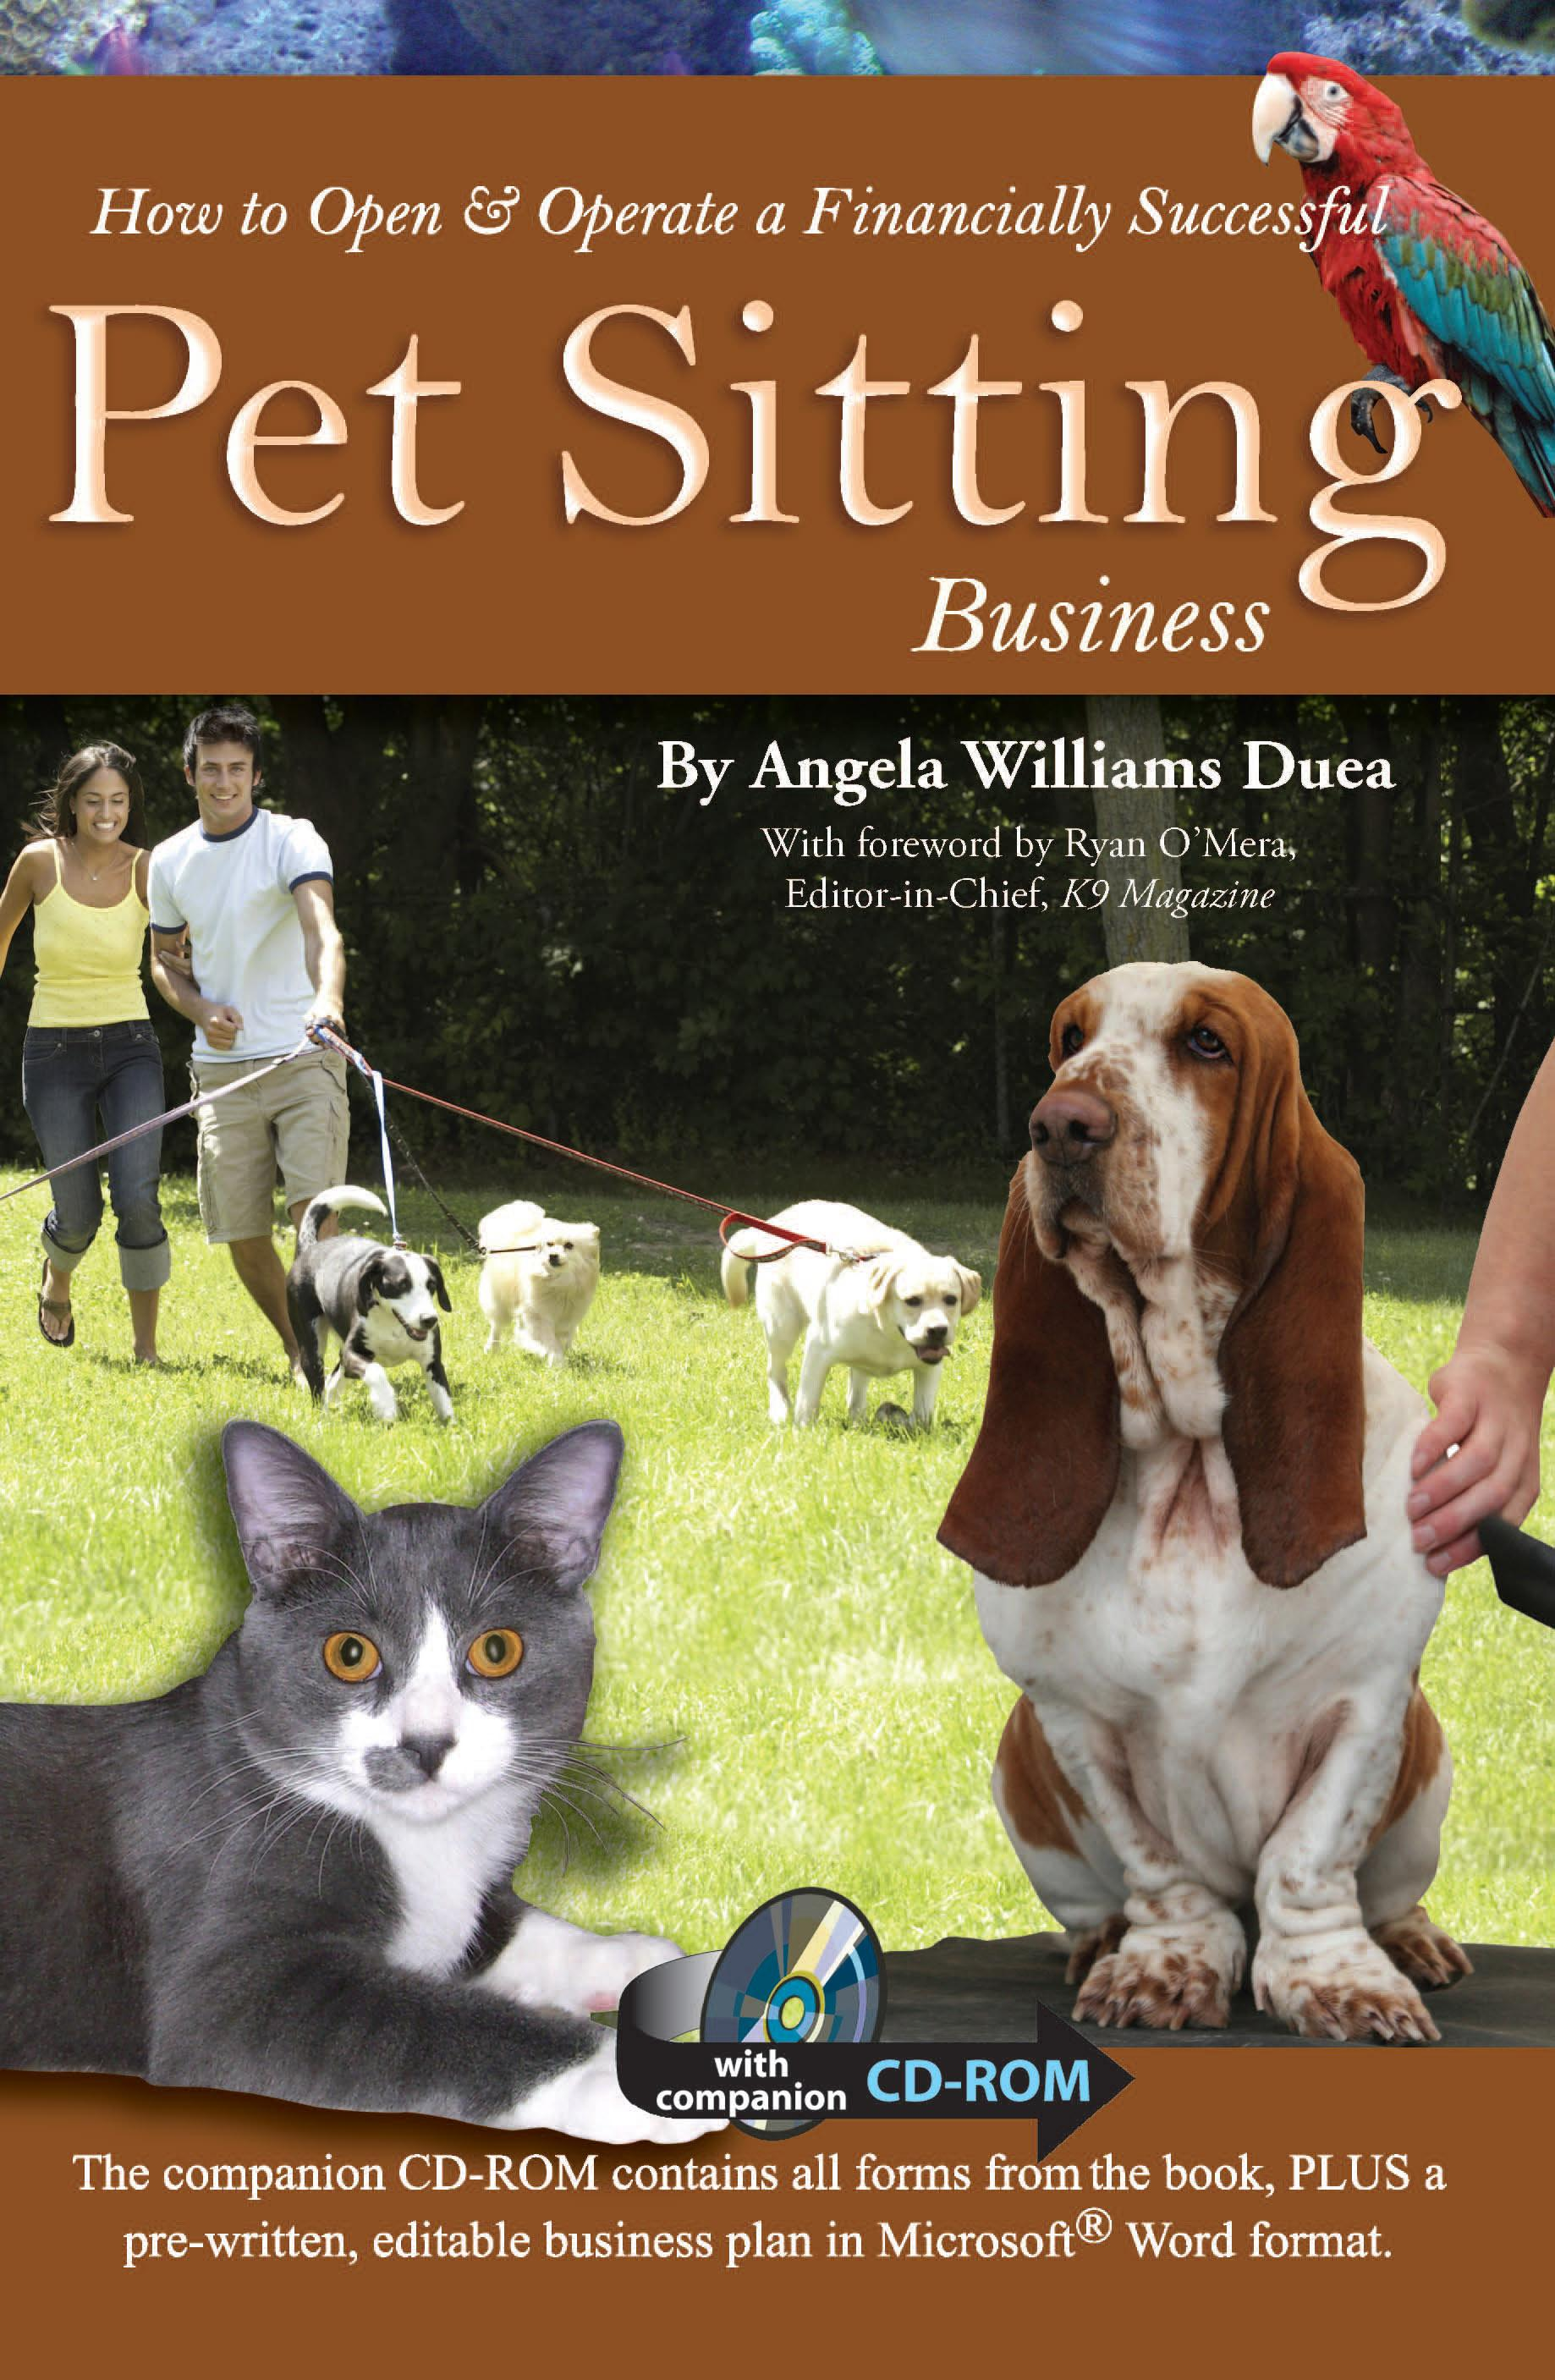 How to Open & Operate a Financially Successful Pet Sitting Business: With Companion CD-ROM